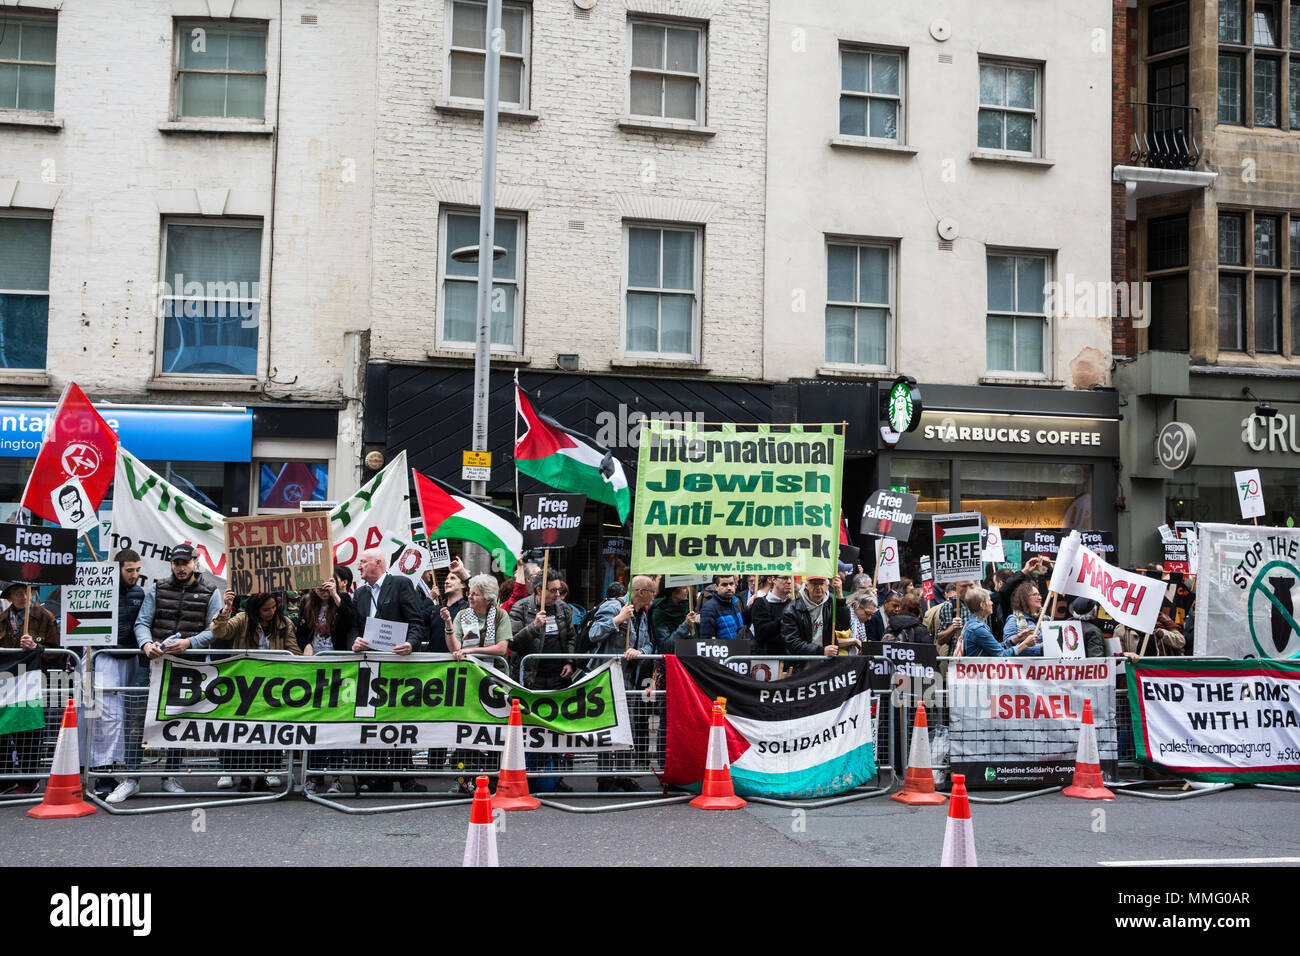 London, UK. 11th May, 2018. Pro-Palestinian activists protest opposite the Israeli embassy to mark the 70th anniversary of the Nakba and in solidarity with the Great March of Return in Gaza. The protest was organised by Palestine Solidarity Campaign, Friends of Al-Aqsa, Palestinian Forum in Britain and Olive. Credit: Mark Kerrison/Alamy Live News - Stock Image